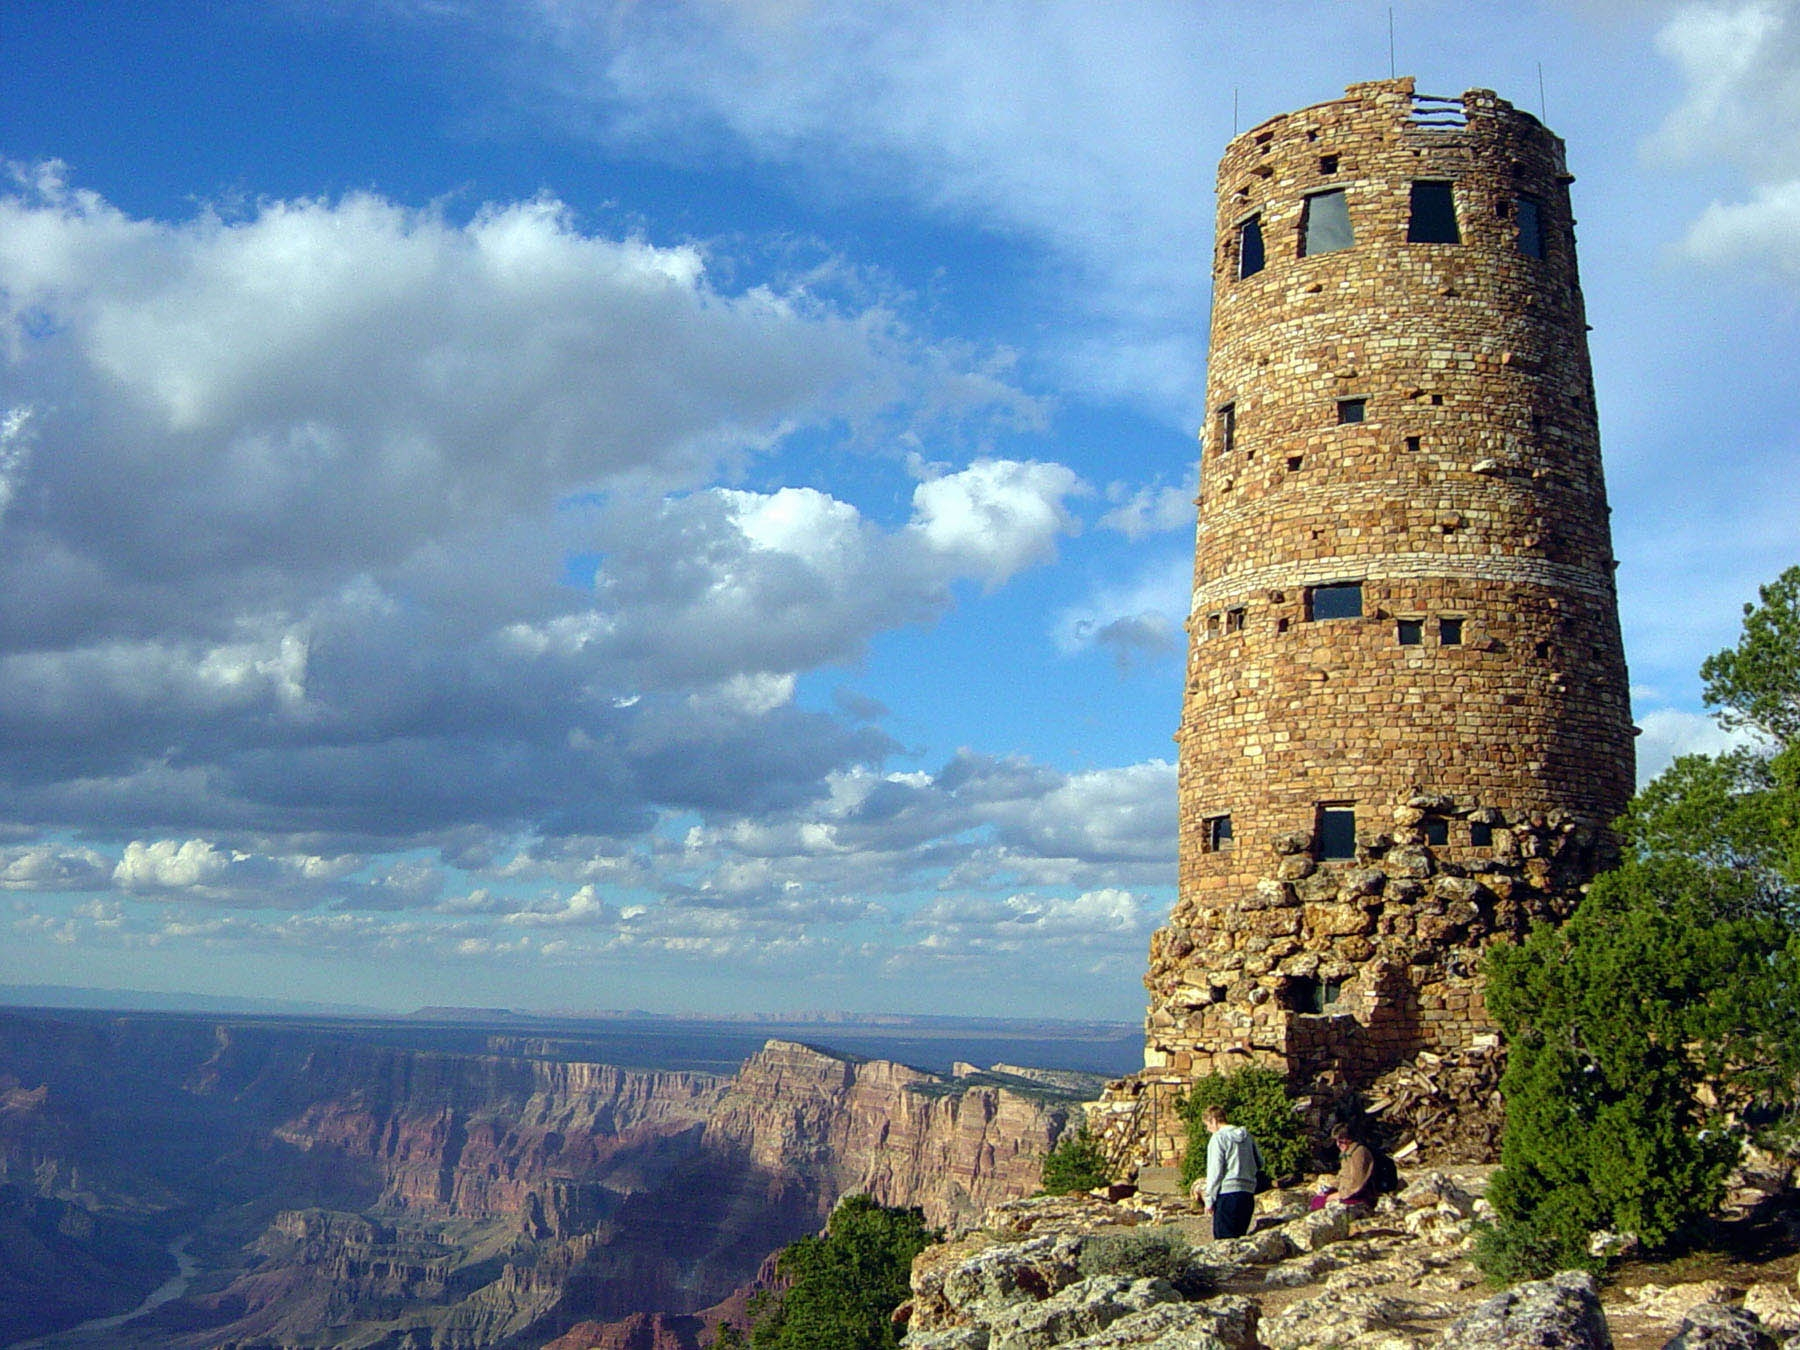 Designed in 1932 By Mary Colter and constructed by the Santa Fe Railroad, The Desert View Watchtower overlooks the eastern end of Grand Canyon National Park. The Colorado River is visible lower left. Grand Canyon National Park, Arizona, undated | Photo courtesy of National Park Service, St. George News